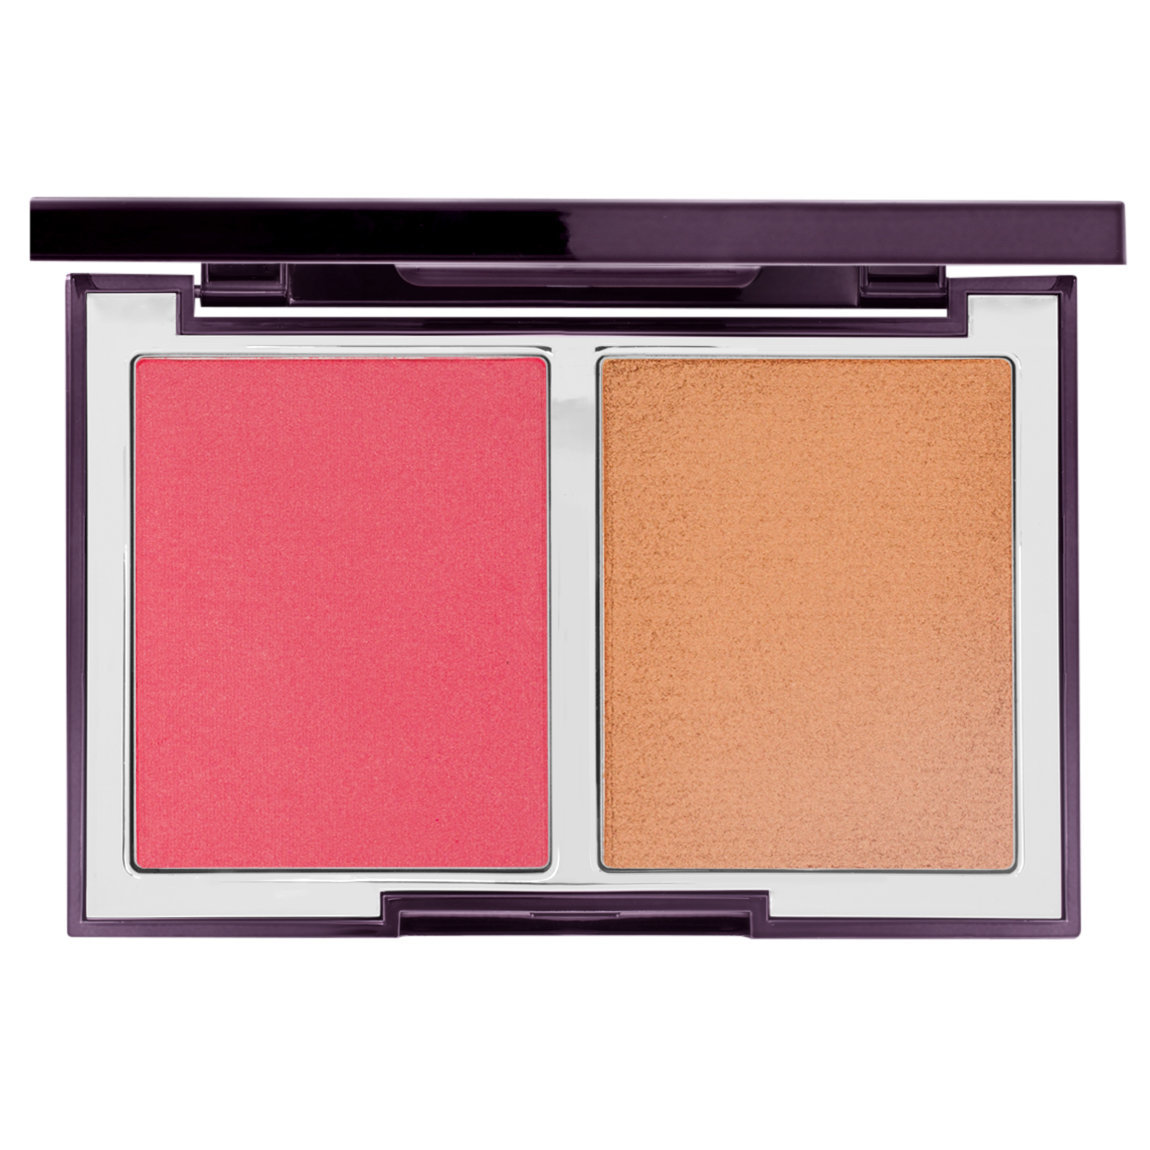 Wayne Goss The Weightless Veil Blush Palette Bright Poppy alternative view 1 - product swatch.